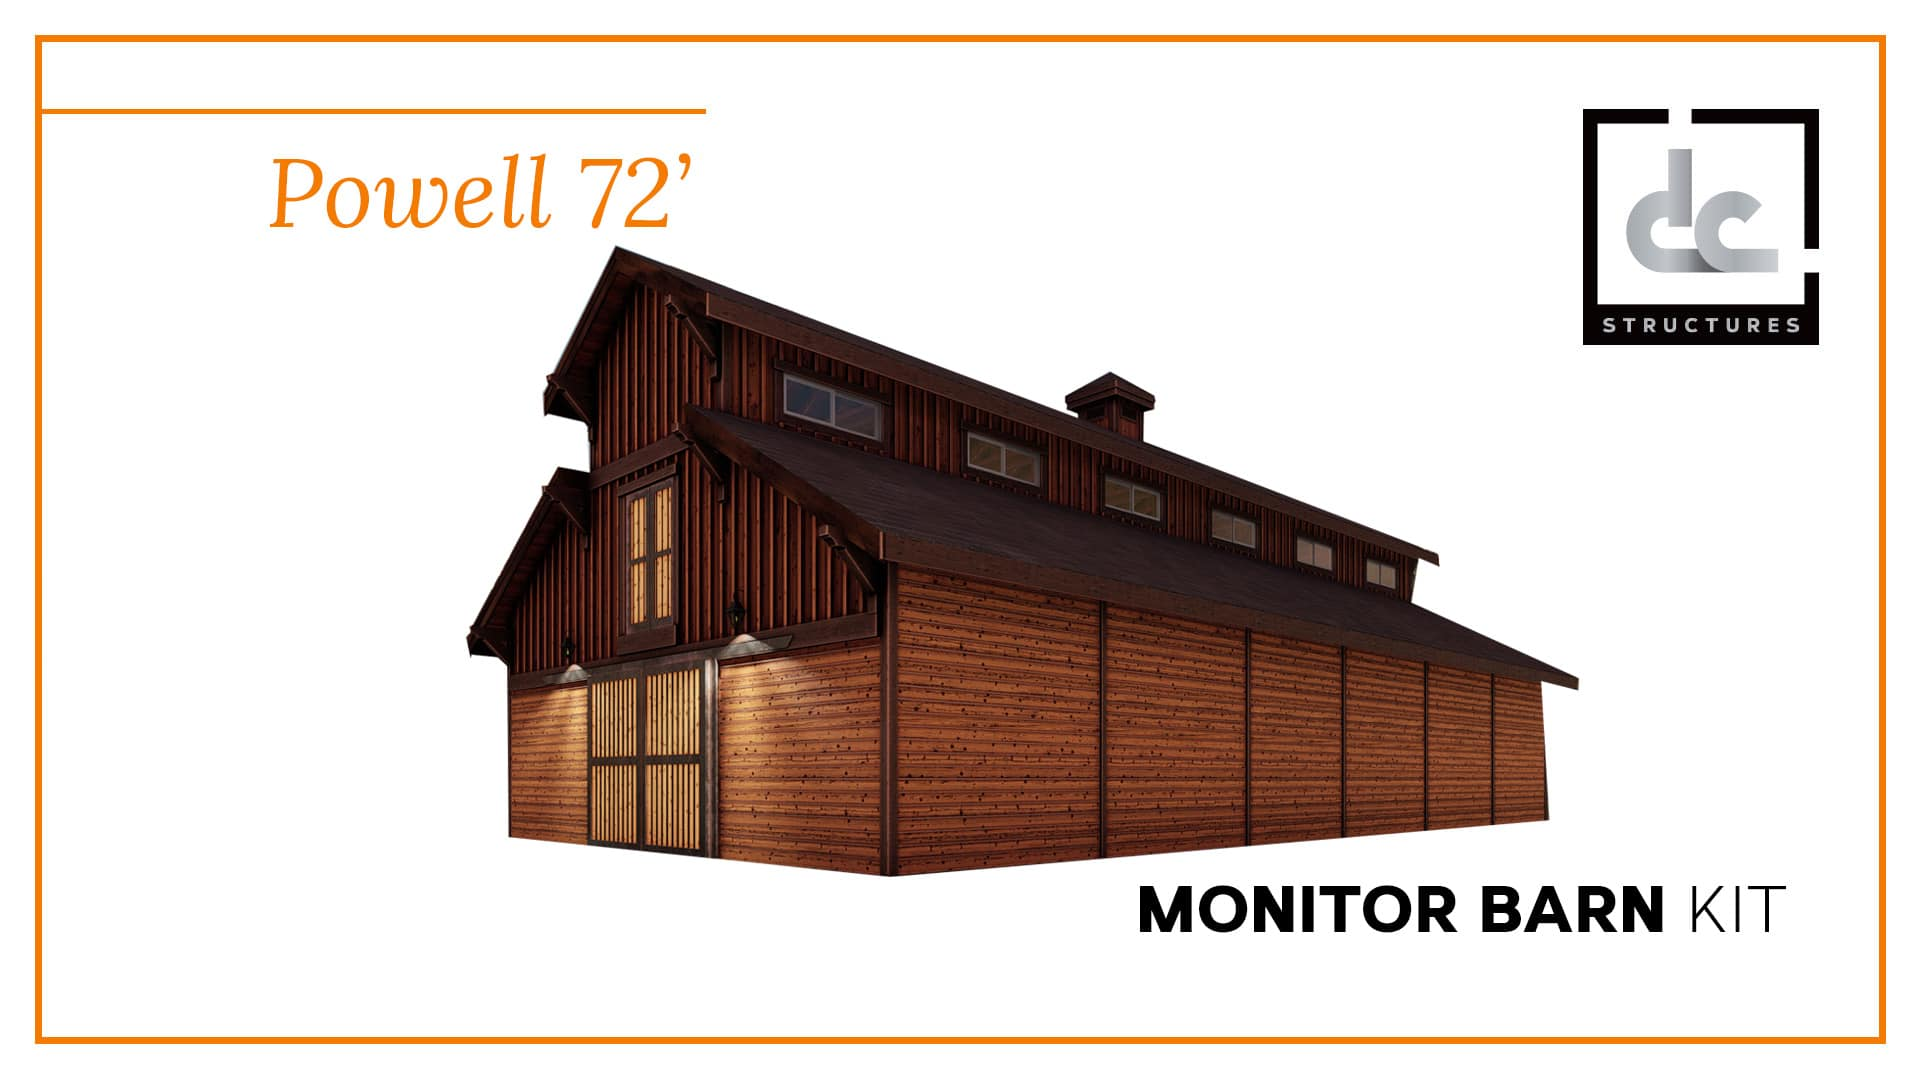 Powell monitor barn kit 72 39 dc structures for Monitor barn kit